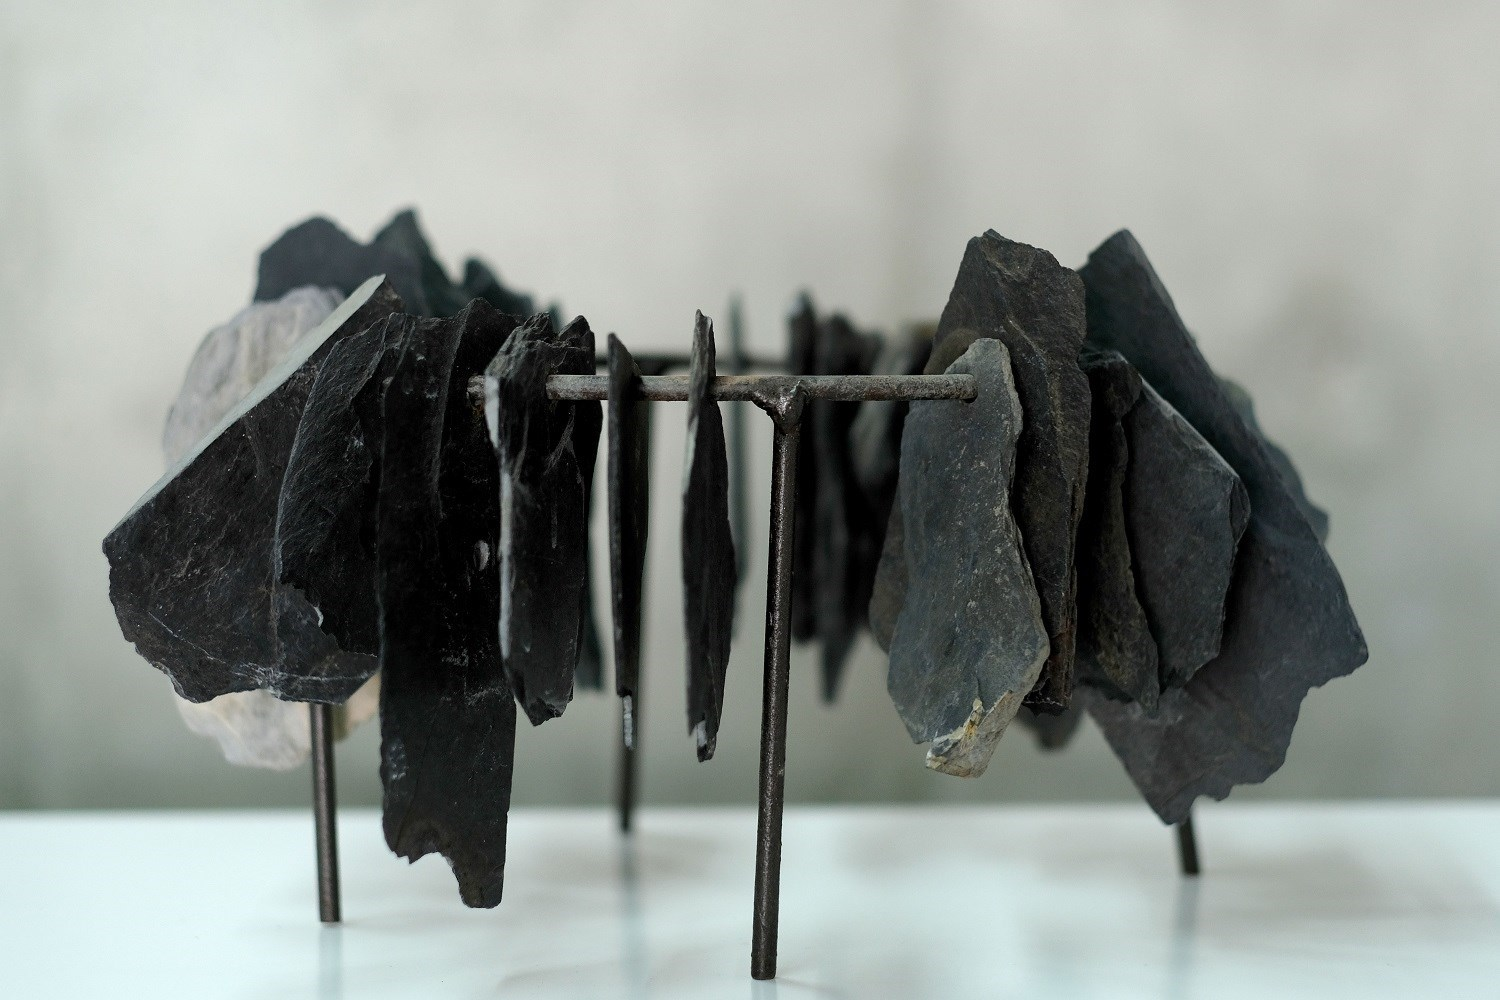 Ecótono 6.2, original Nature Metal Sculpture by Ana Almeida Pinto